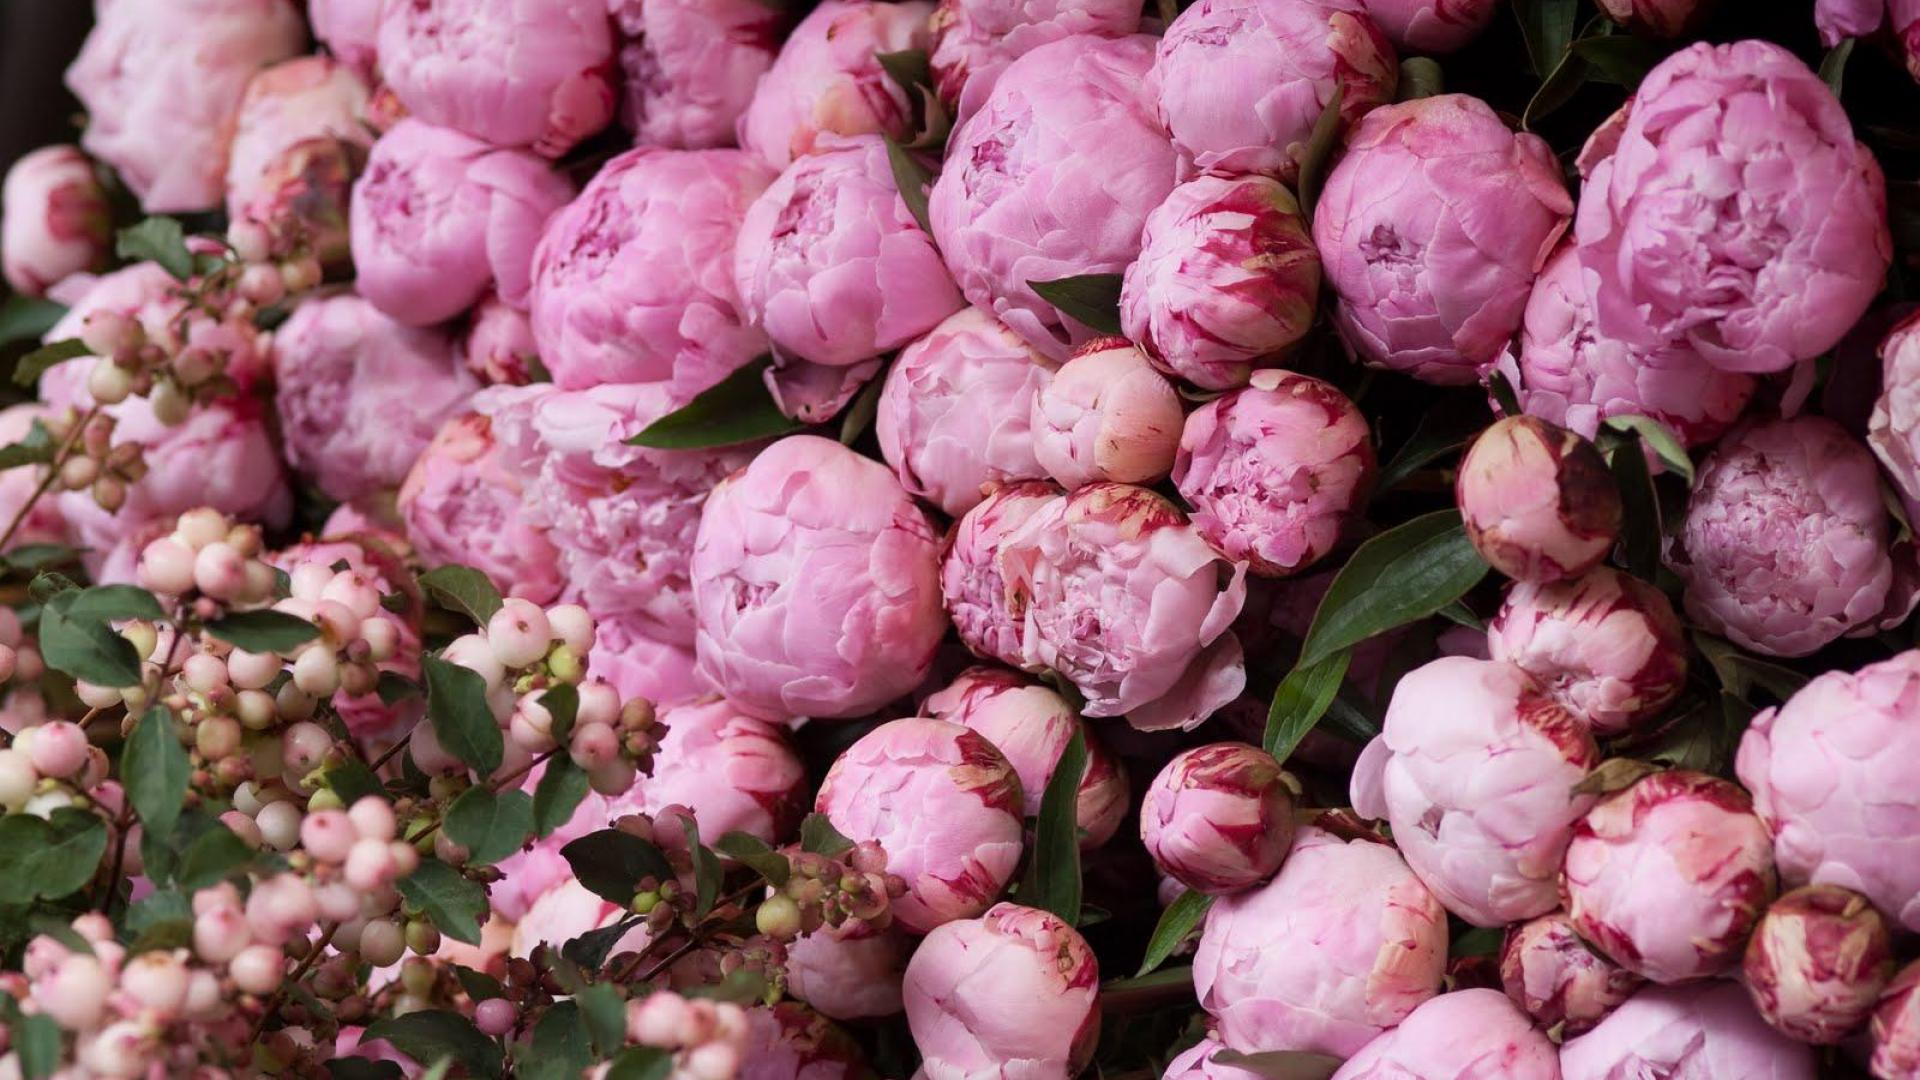 Pink Peonies: Pink Peony Wallpaper Hd Wallpapers 1920x1080px